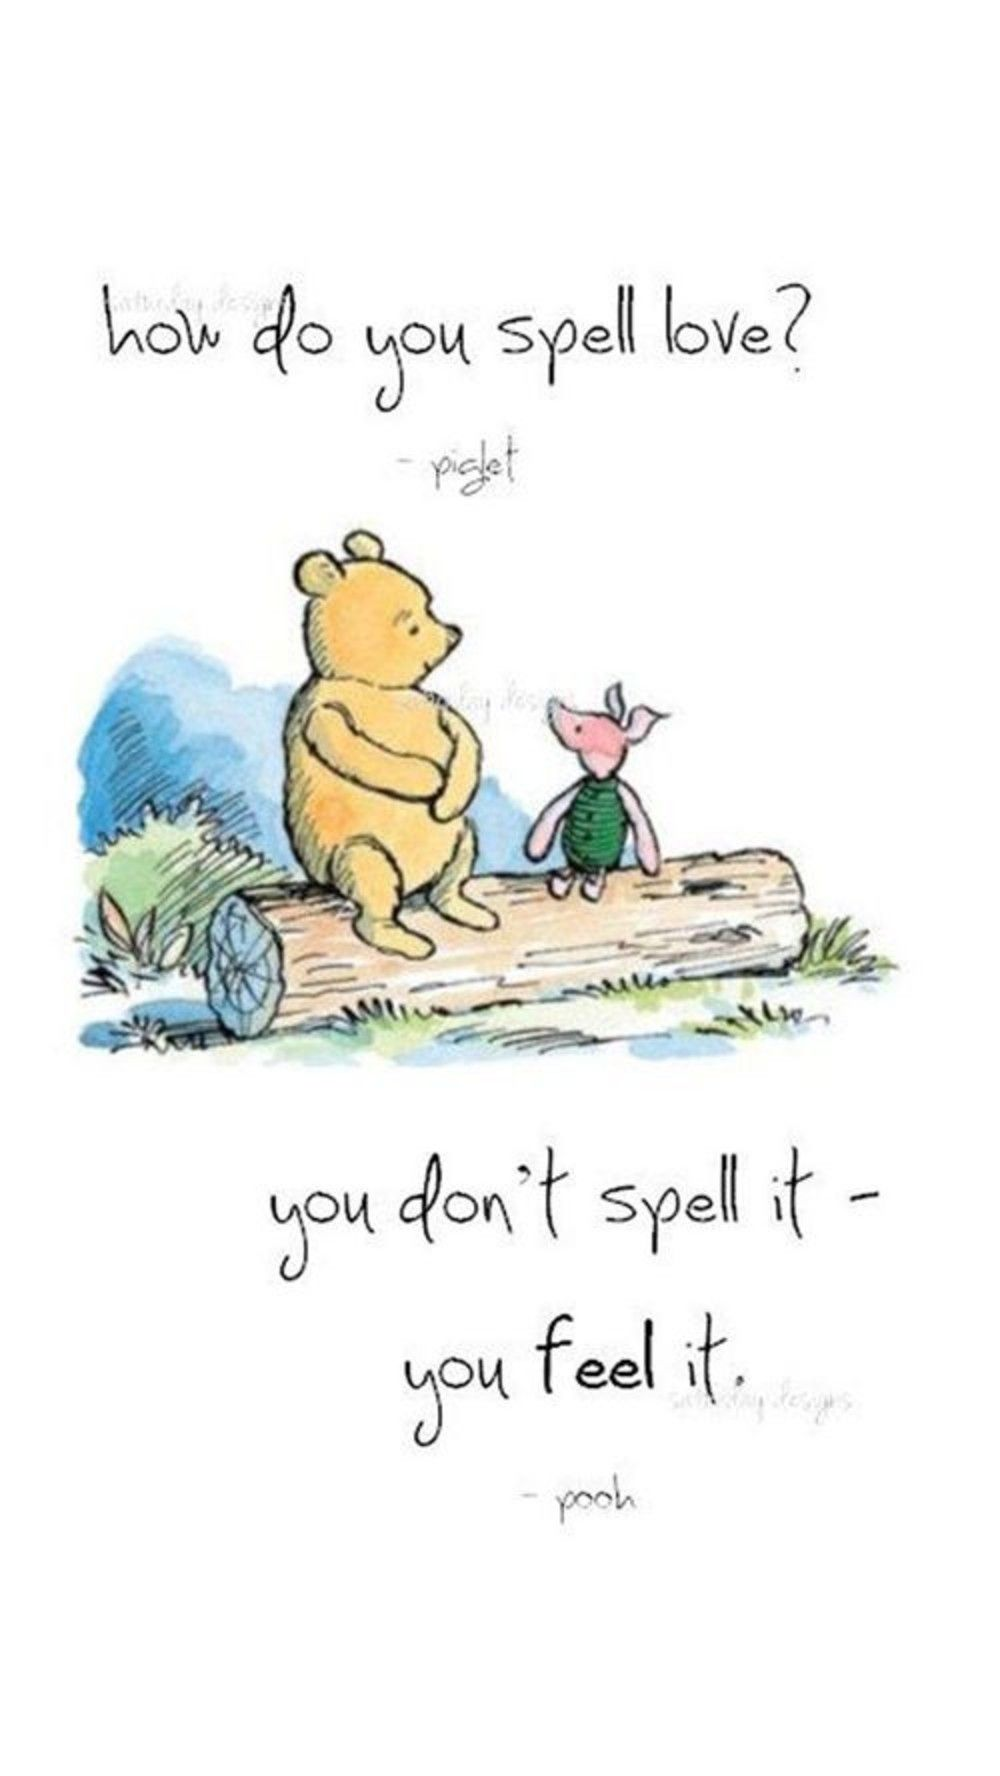 Love Spell Quotes How Do You Spell Love  Positive  Pinterest  Pooh Bear